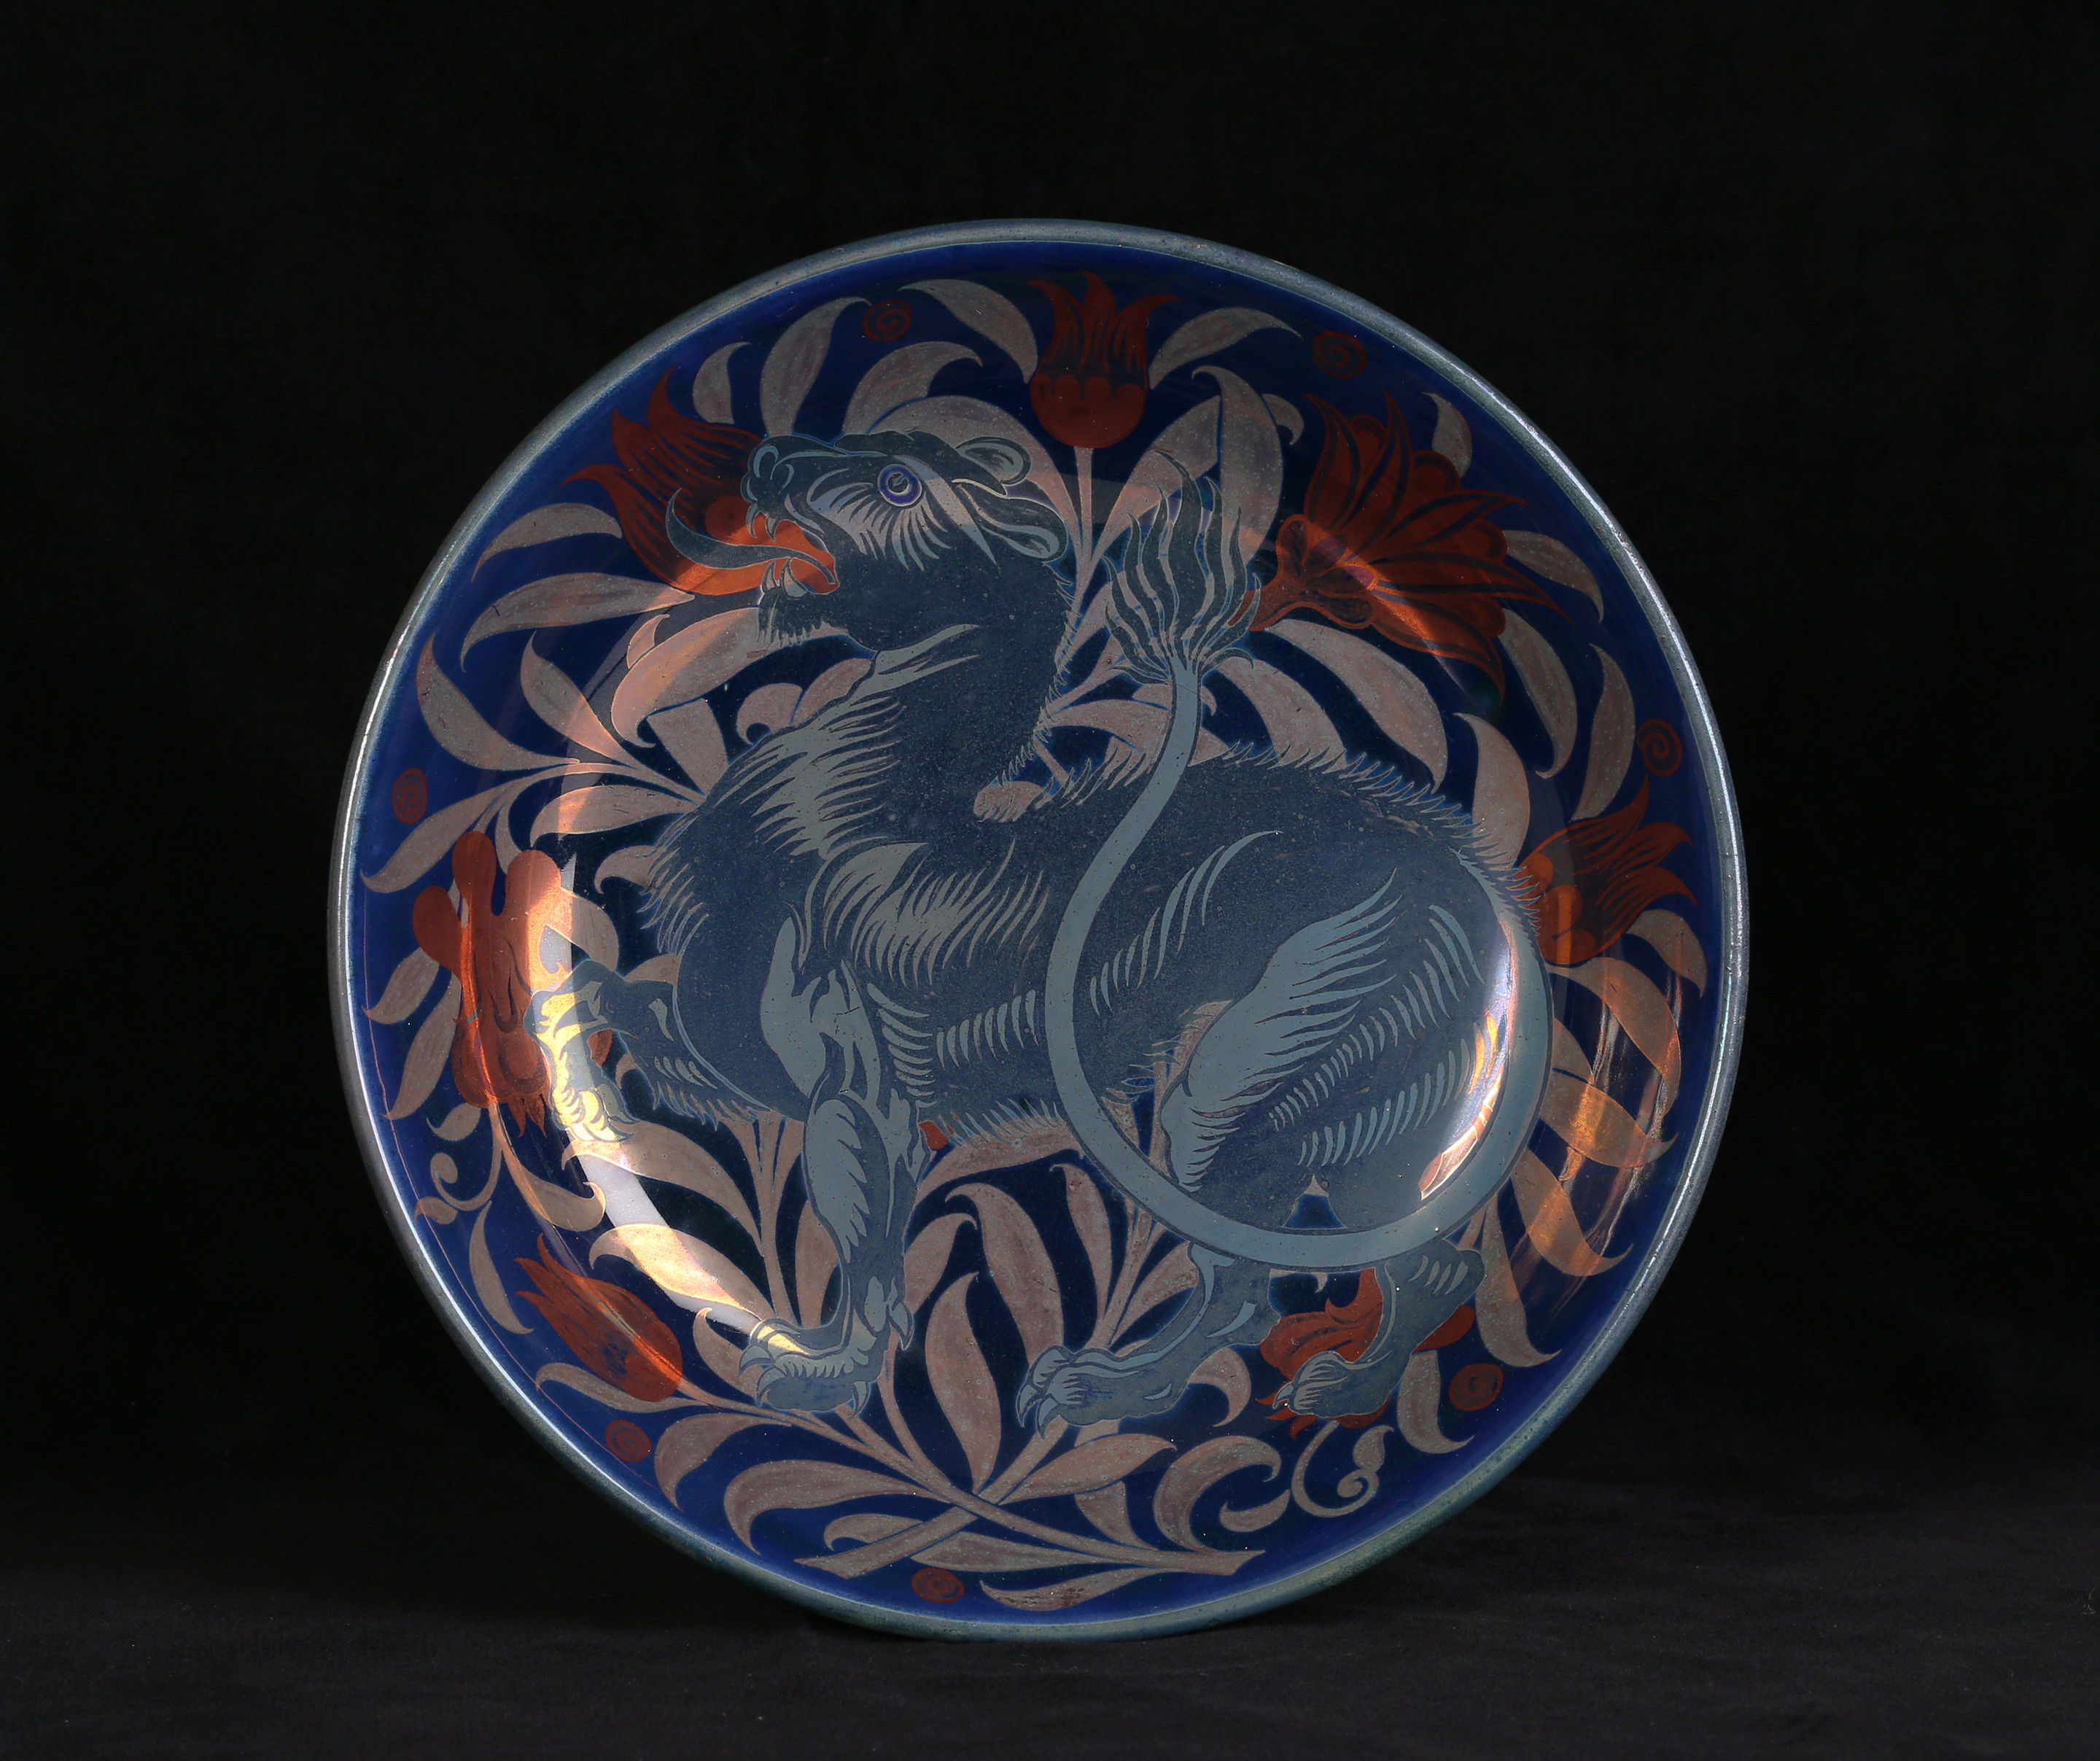 A William De Morgan Triple Lustre 'Moonlight and Sunset Suite' Saucer Dish, Decorated by Charles Passenger